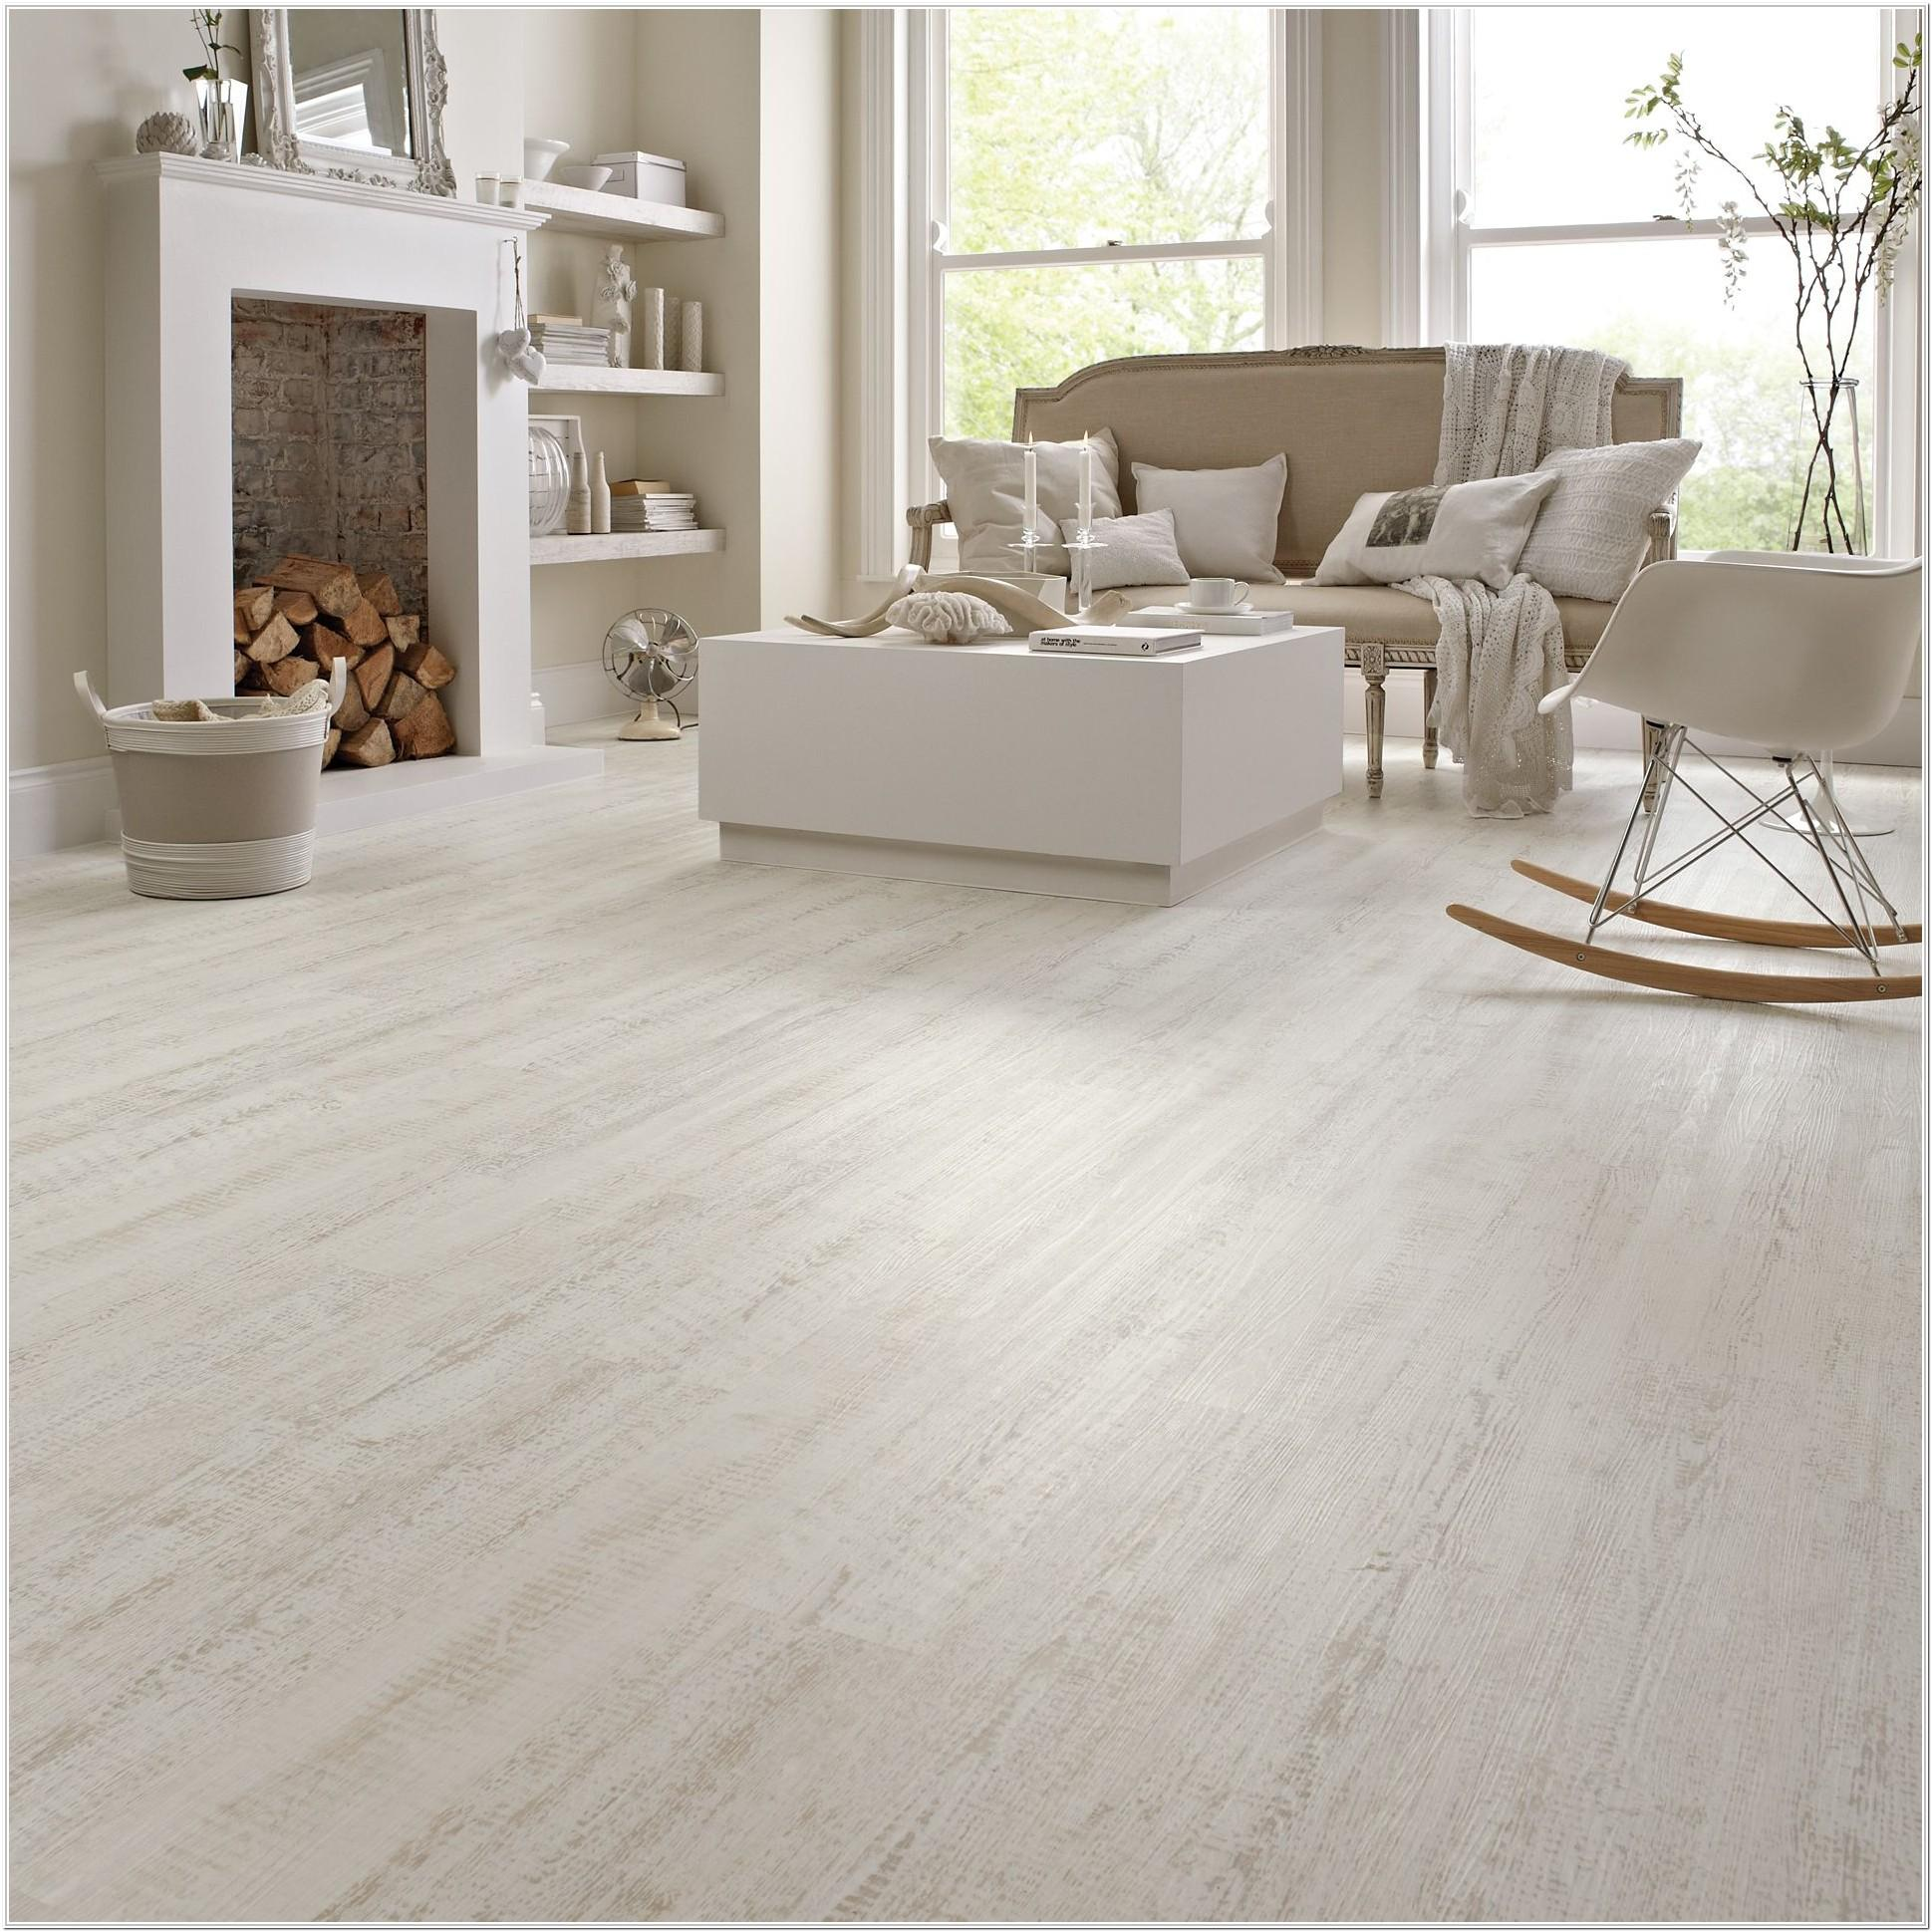 Living Room Vinyl Flooring Ideas